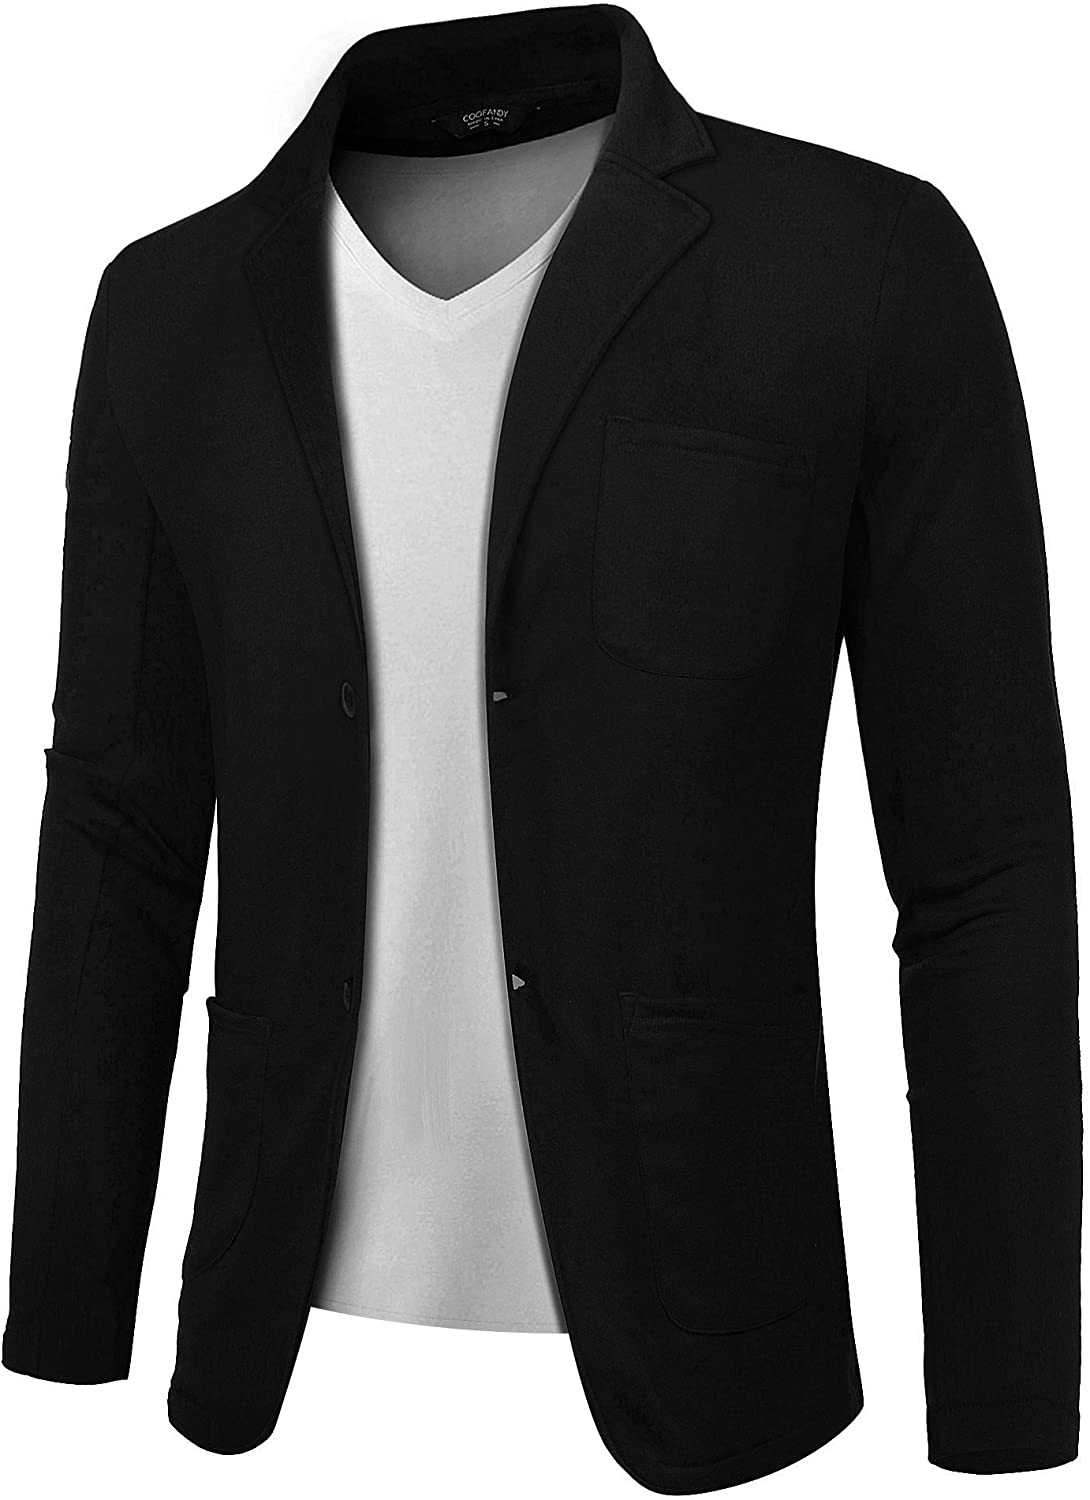 COOFANDY Lightweight Sports Coats Two Button Cotton BCasual Suit Blazer Jackets